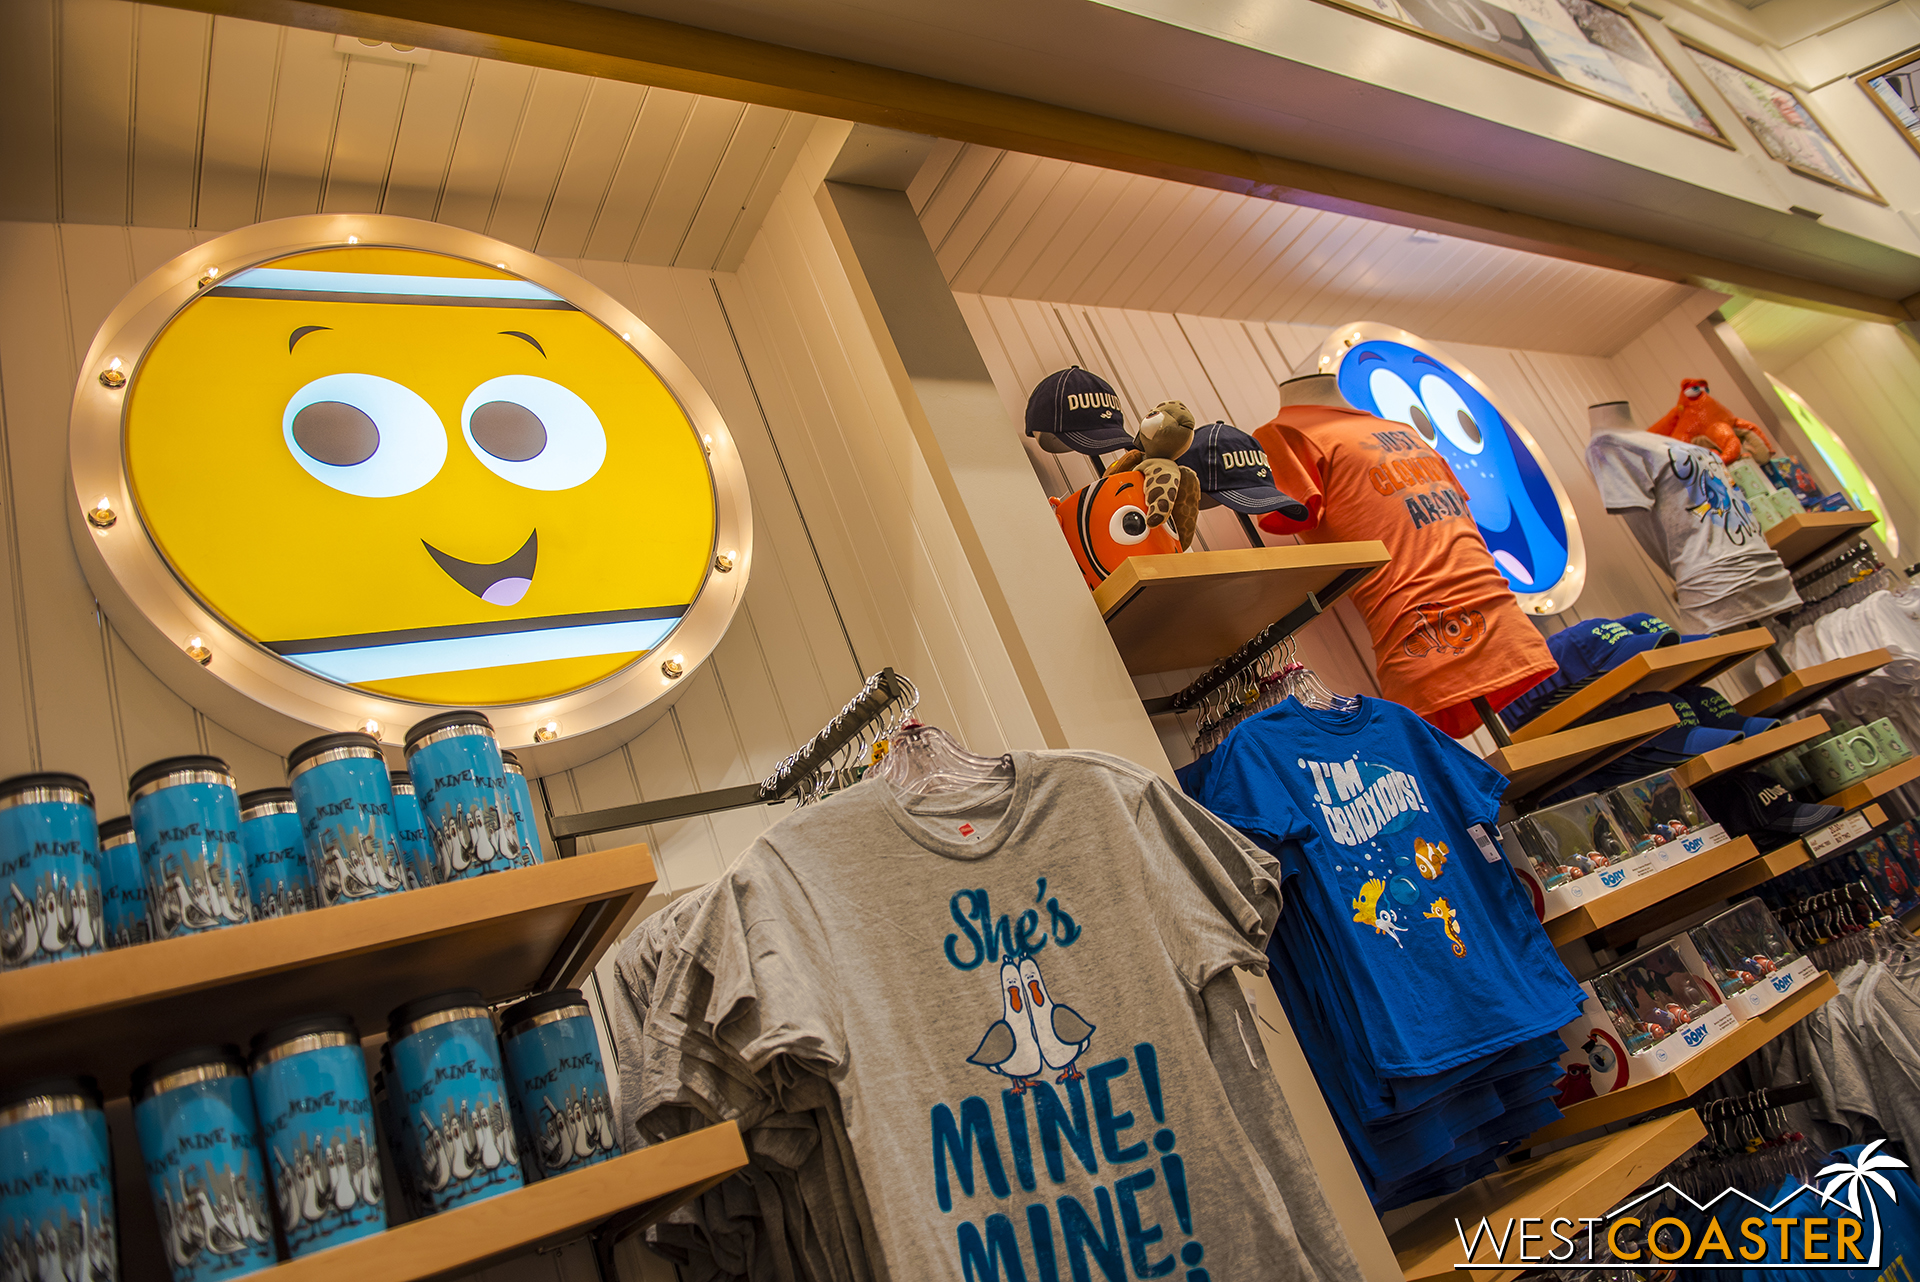 The store has been done up to offer all sorts of Pixar paraphernalia.